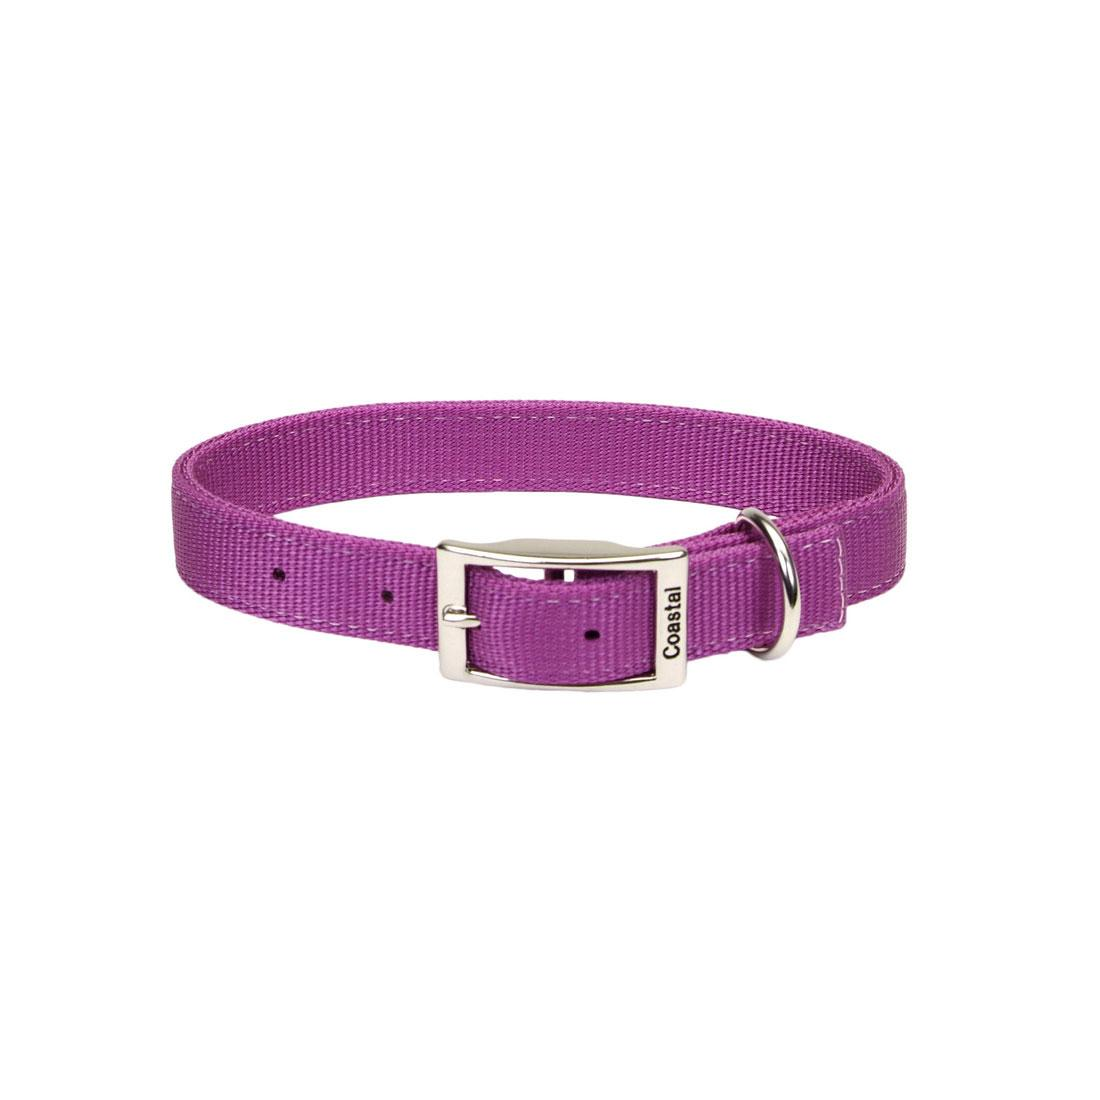 Coastal Double-Ply Dog Collar, Orchid, 1-in x 26-in